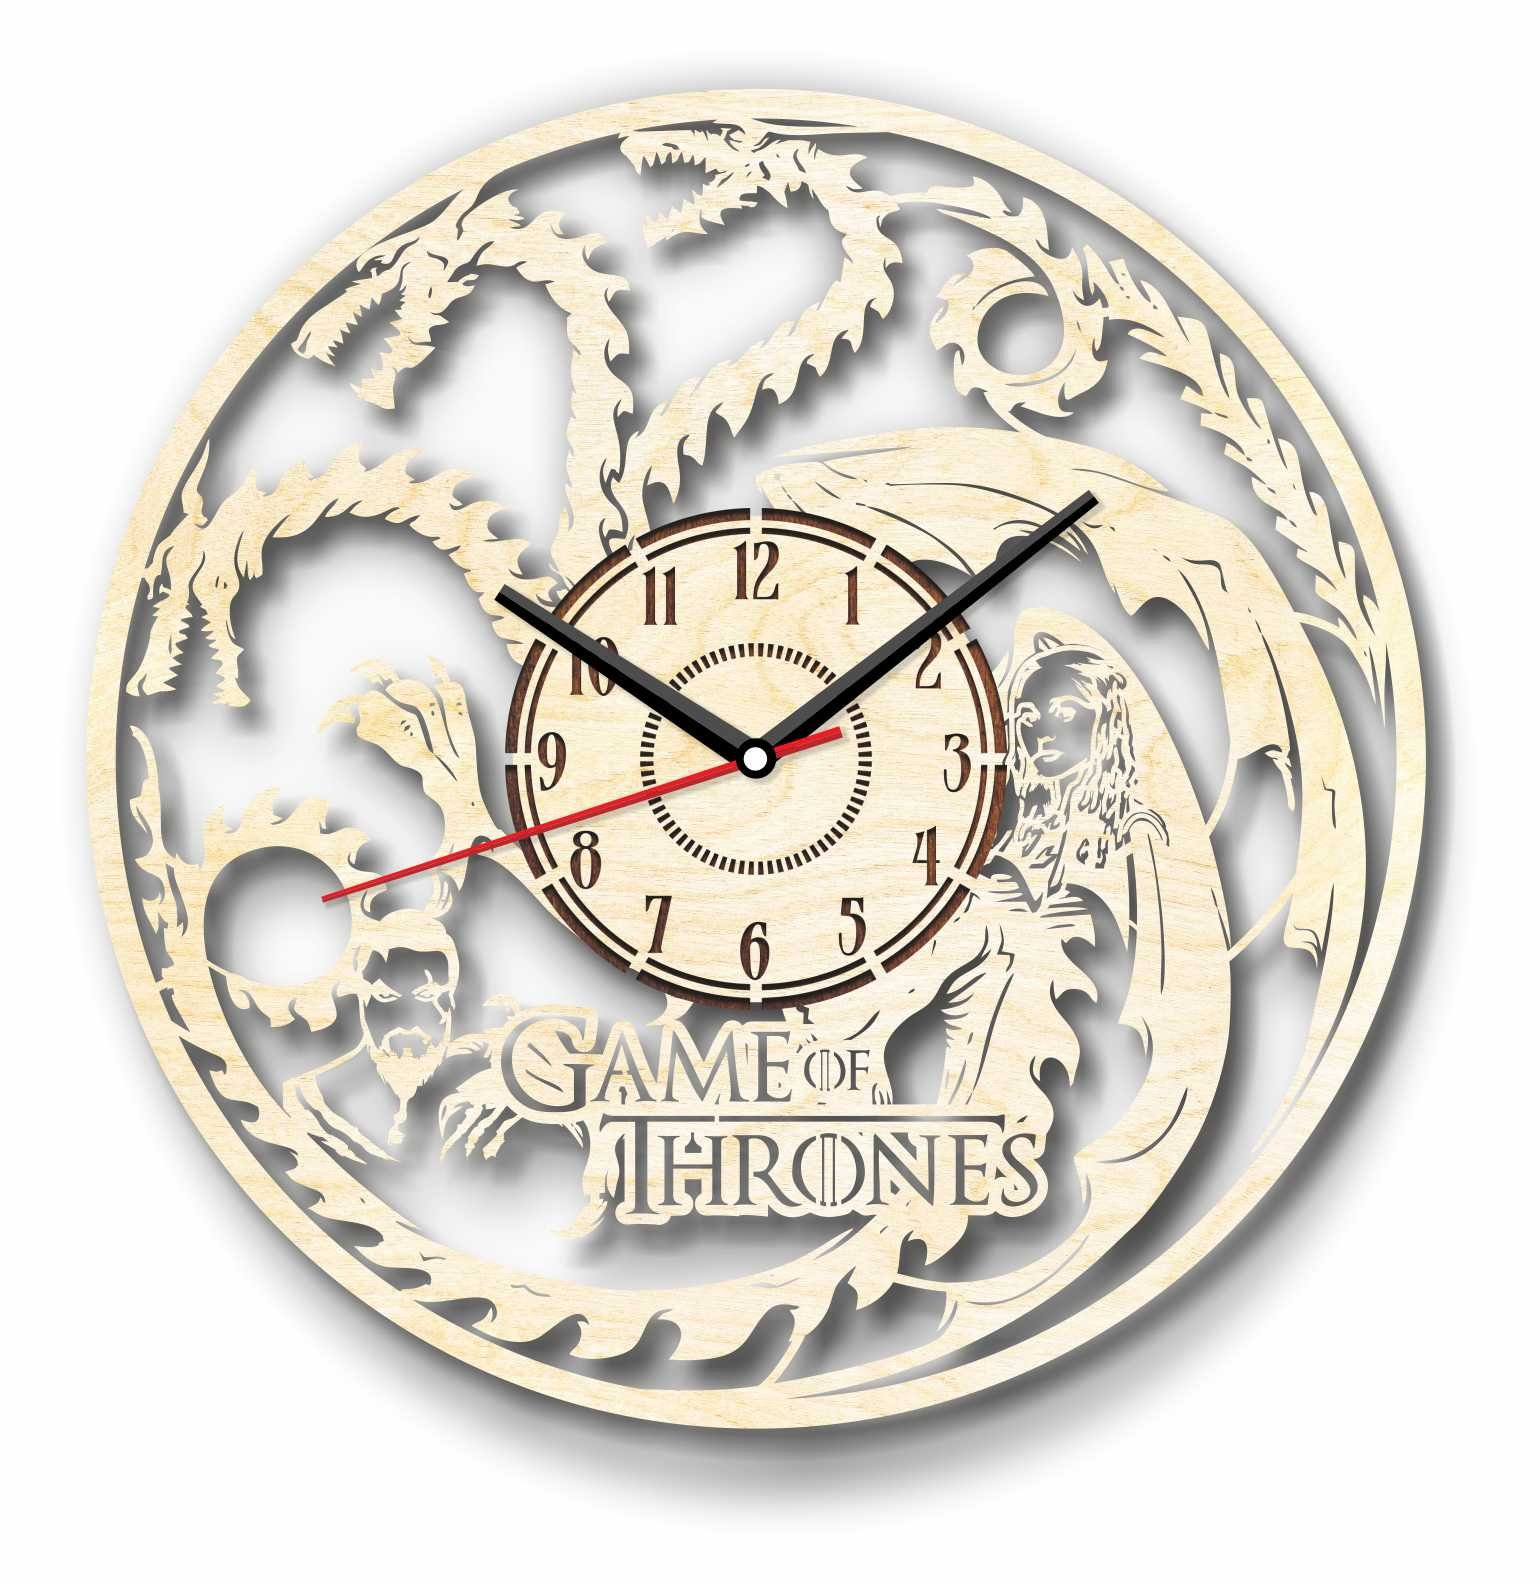 7ArtsStudio Game of Thrones Mother of Dragons Wall Clock Made of WOOD - Perfect and Beautifully Cut - Decorate your Home with MODERN ART - UNIQUE GIFT for Him and Her - Size 12 Inches